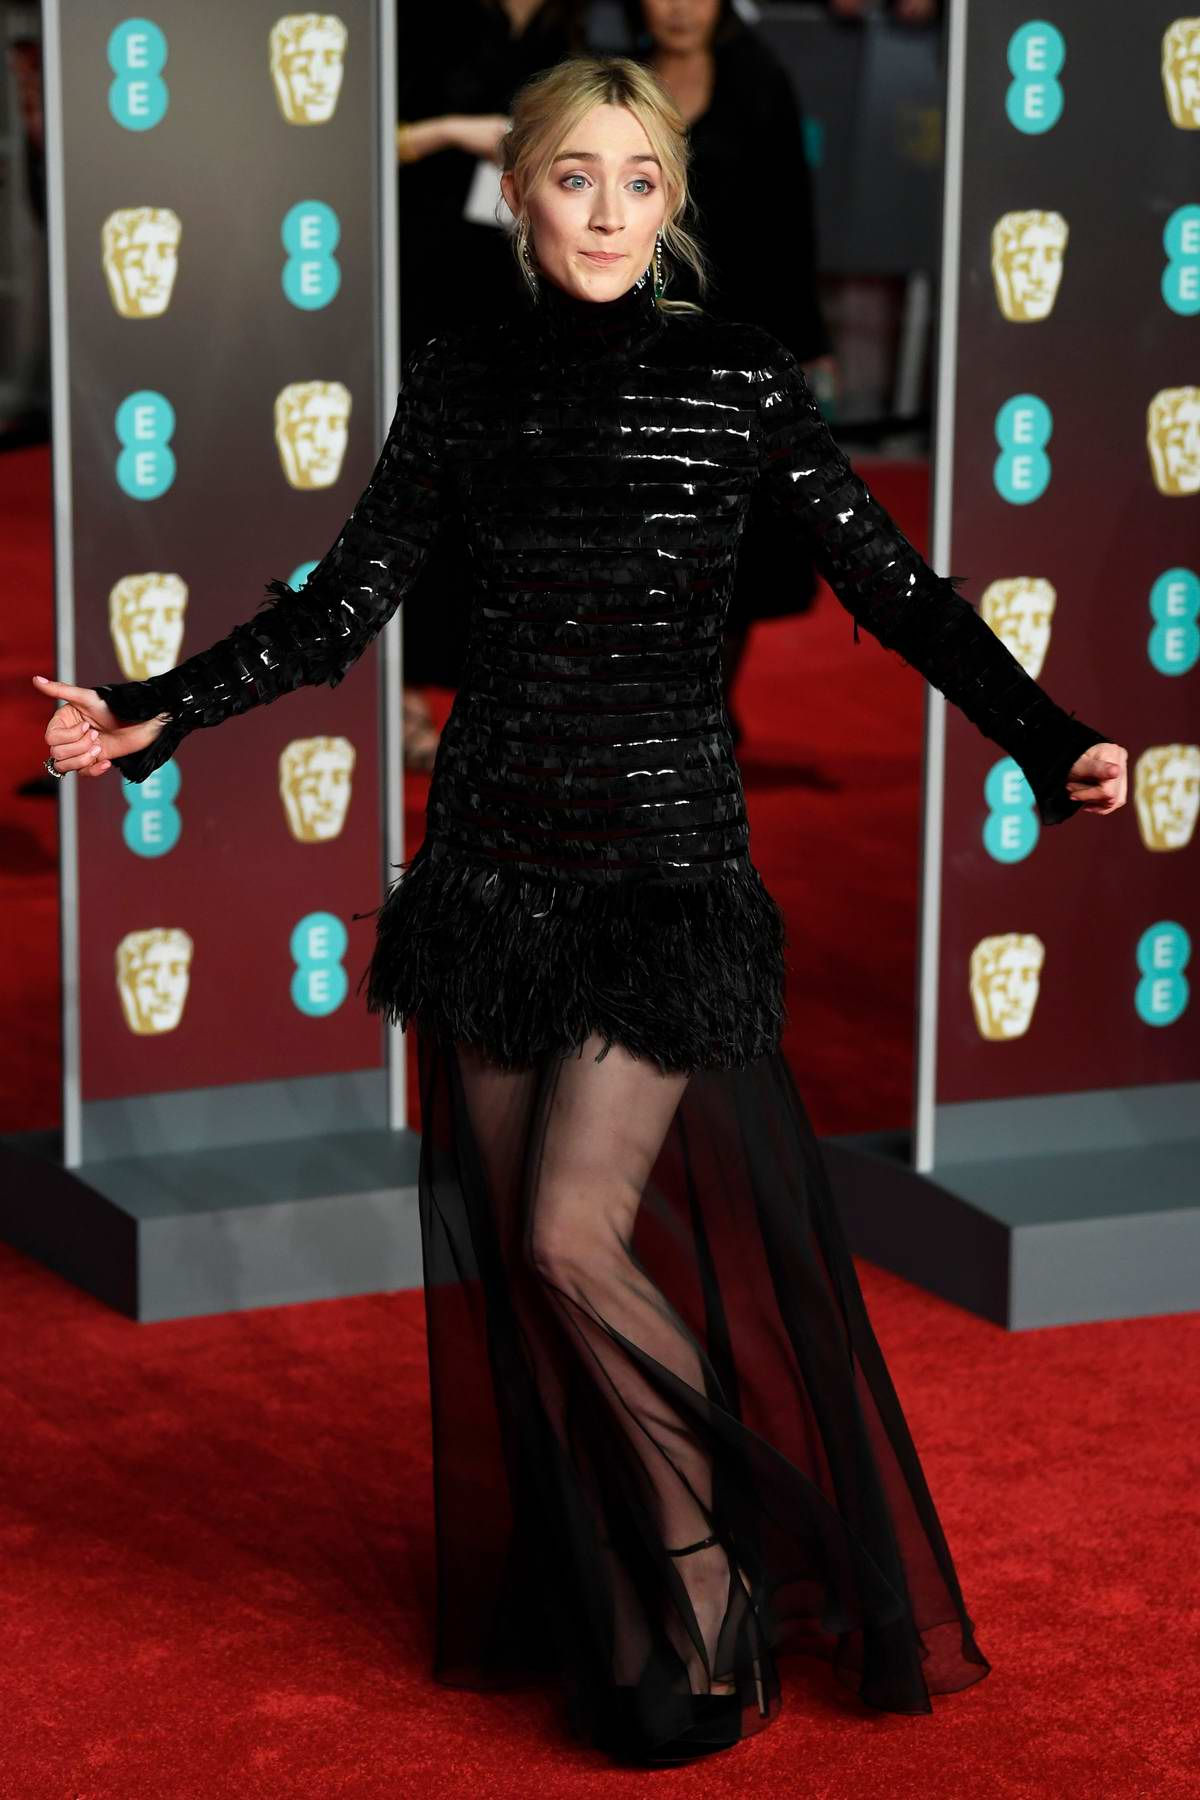 Saoirse Ronan attends 71st British Academy Film Awards at Royal Albert Hall in London